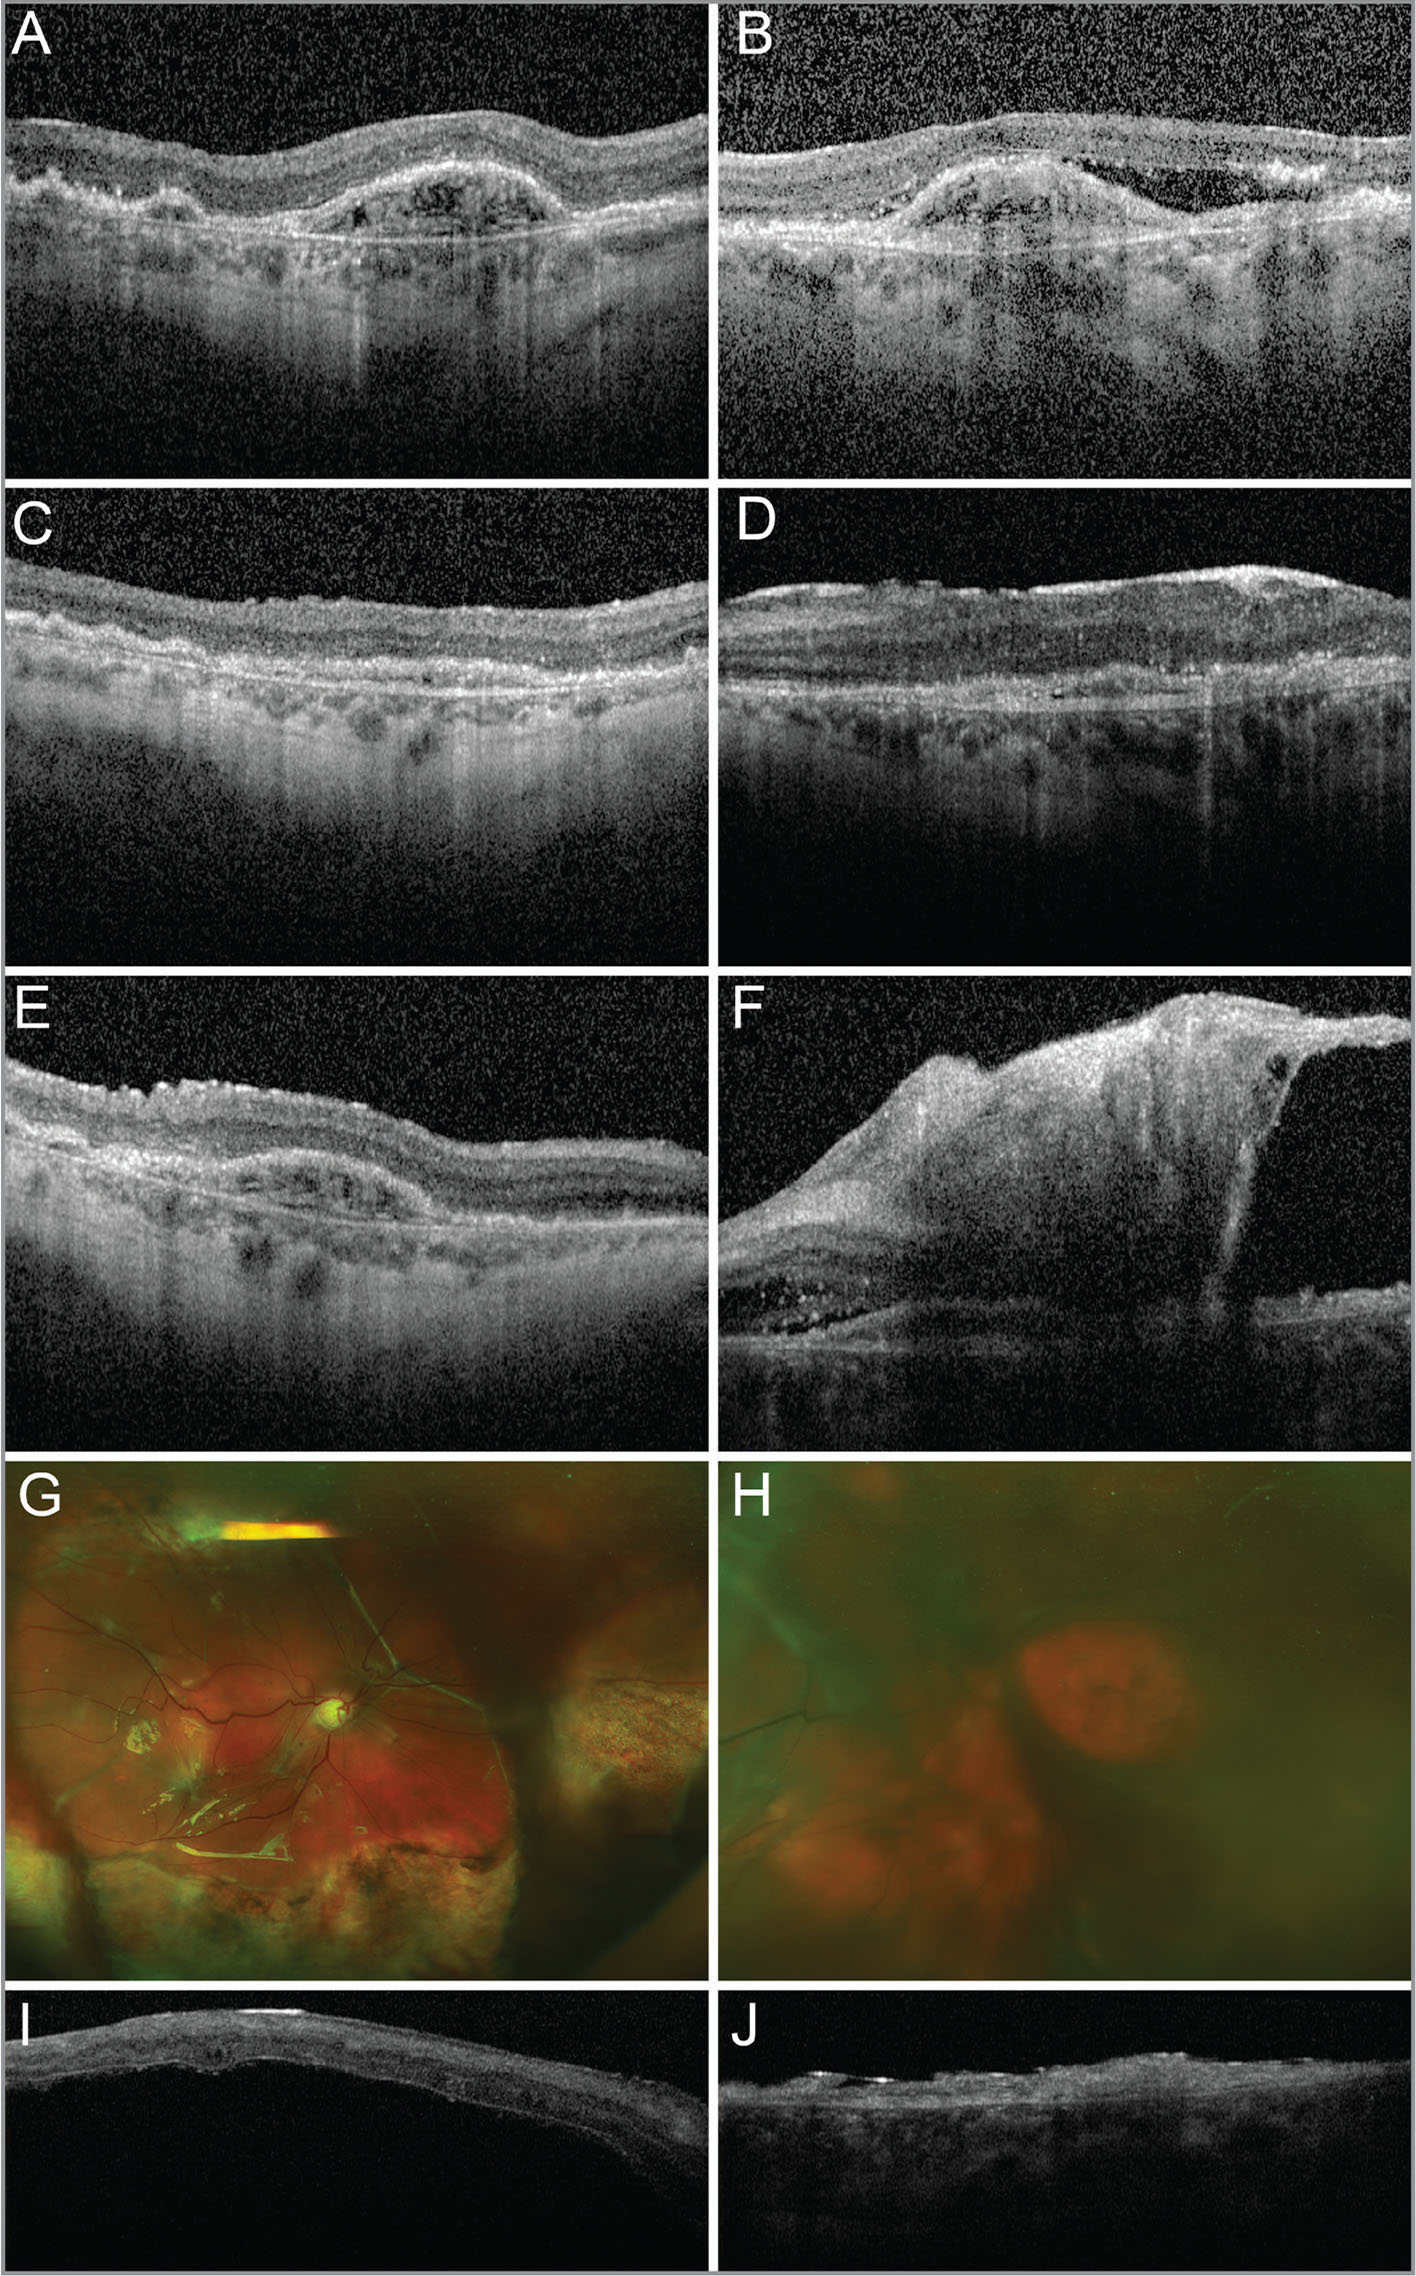 "A 77-year-old woman with a history of bilateral exudative macular degeneration received intravitreal adipose-derived ""stem cell"" injections in both eyes. Her baseline optical coherence tomography (OCT) images are shown 4 months prior to the injections in the right (A) and left (B) eyes. Three weeks after ""stem cell"" injections, the normal retinal contour was blunted by epiretinal membrane (ERM) formation in the right (C) and left (D) eyes. Vitreous hemorrhage and debris were noted bilaterally. Five weeks after ""stem cell"" injections, the ERM in the right eye progressed, resulting in progressive irregularities in the retinal contour (E). The left eye developed a tractional retinal detachment (F). By 7 months after the ""stem cell"" injections, the patient had undergone a retinal detachment repair in the right eye at an outside institution. Fundus photographs show recurrent rhegmatogenous/tractional retinal detachments with proliferative vitreoretinopathy in the right (G) and left (H) eyes. The view in the left eye is limited by a brunescent cataract. OCT imaging showed detachment of the right macula with a thin, hyperreflective overlying membrane (I). OCT imaging of the left eye showed thinned and atrophic retina with a thin, hyperreflective overlying membrane (J). The initial vision was 20/200 in the right eye and 20/400 in the left eye. Visual acuity 7 months after the ""stem cell"" injections was hand motions in the right eye and light perception in the left eye."